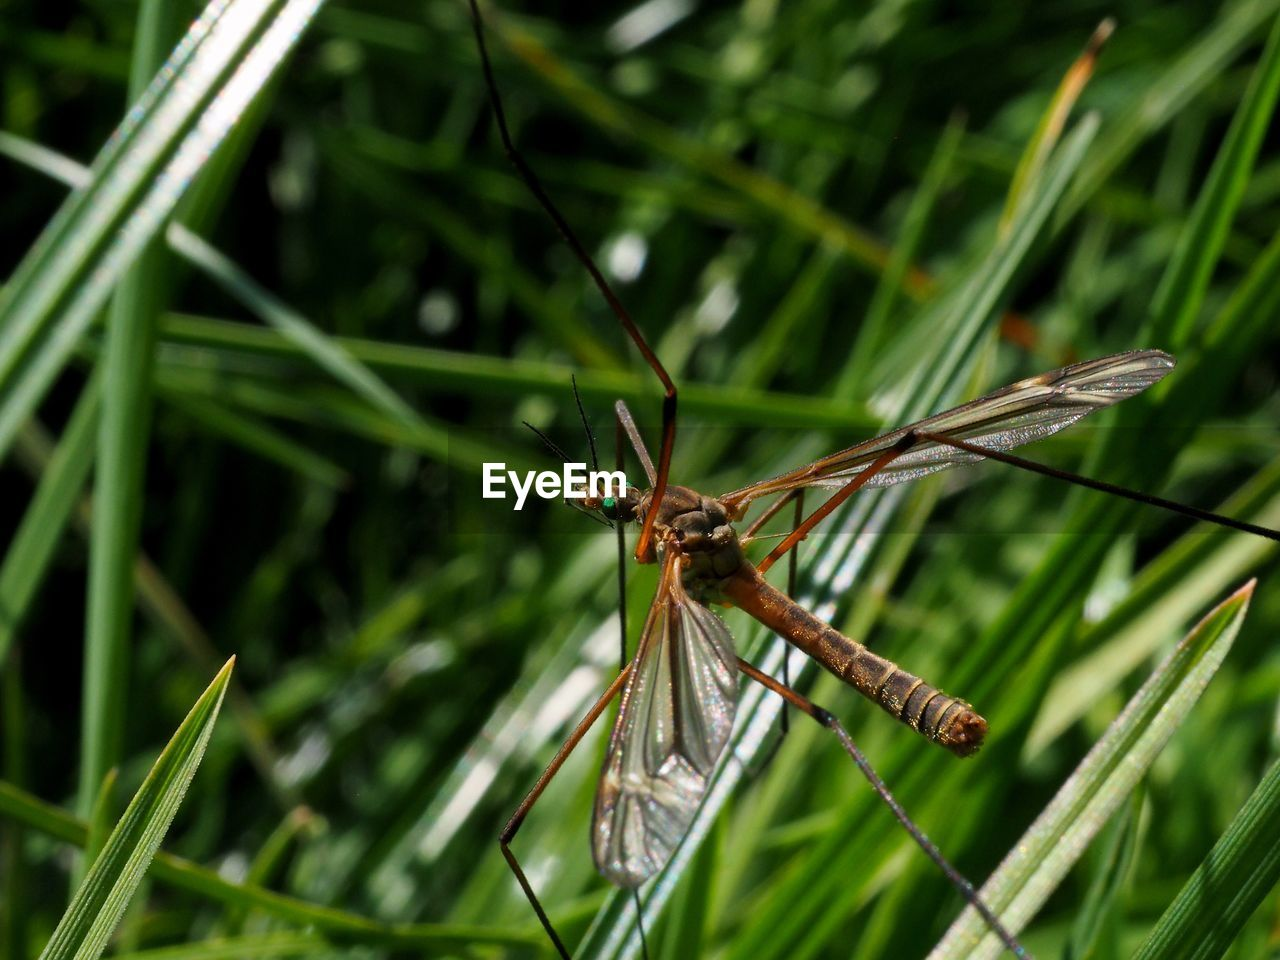 insect, invertebrate, one animal, animal themes, green color, animal, plant, animals in the wild, close-up, focus on foreground, animal wildlife, animal wing, grass, day, nature, no people, dragonfly, growth, leaf, plant part, outdoors, blade of grass